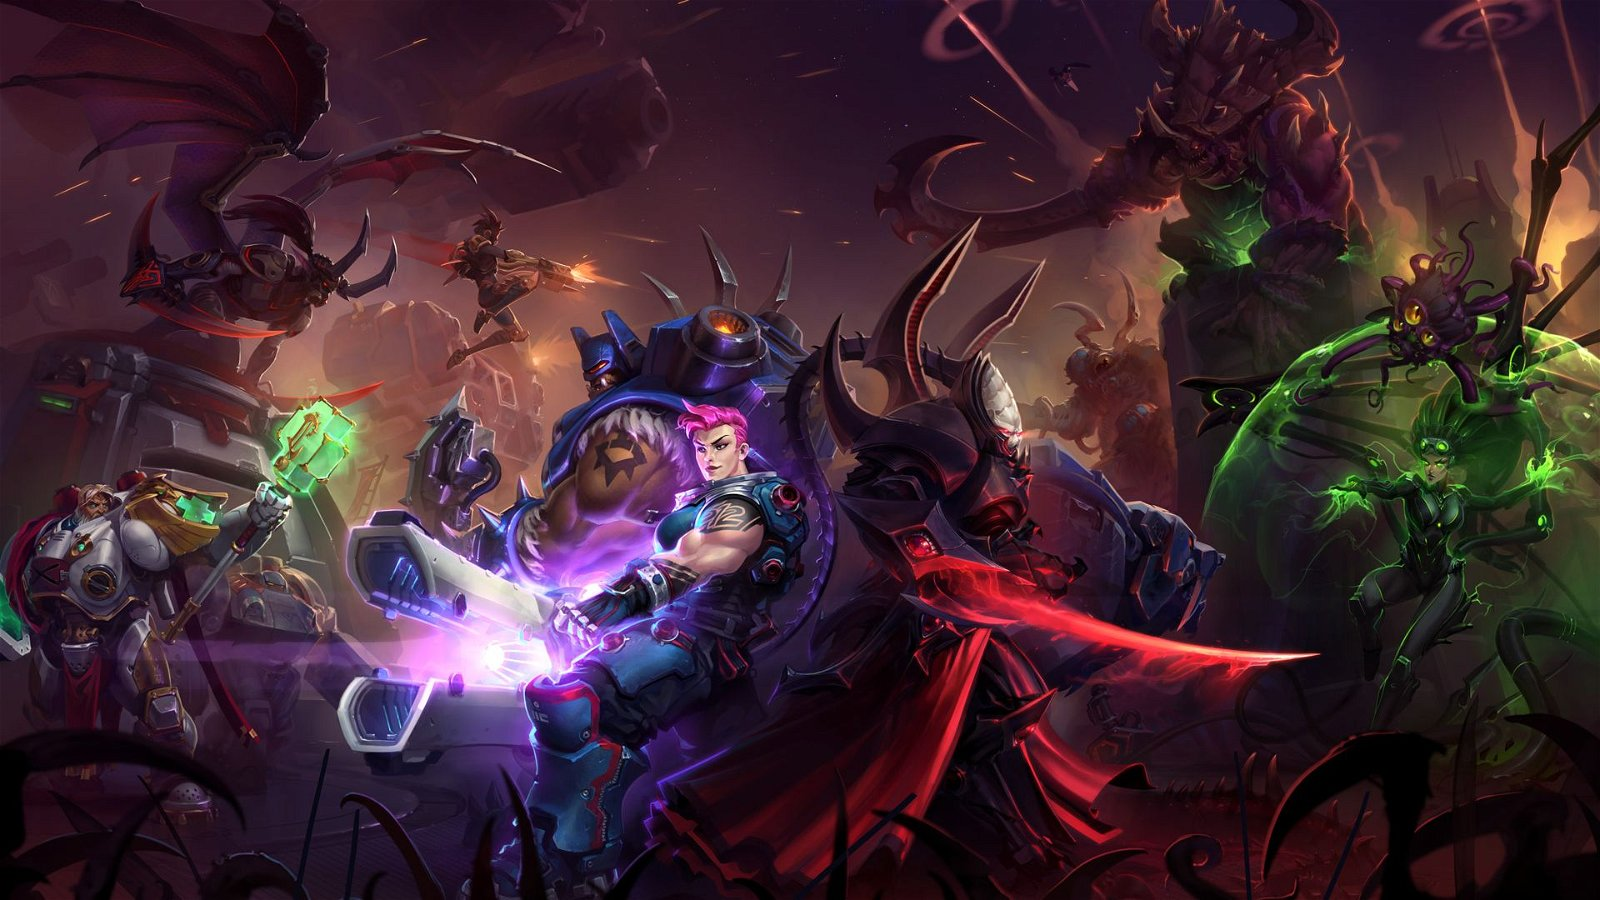 Overwatch Character Zarya Joins Heroes of the Storm Roster 1